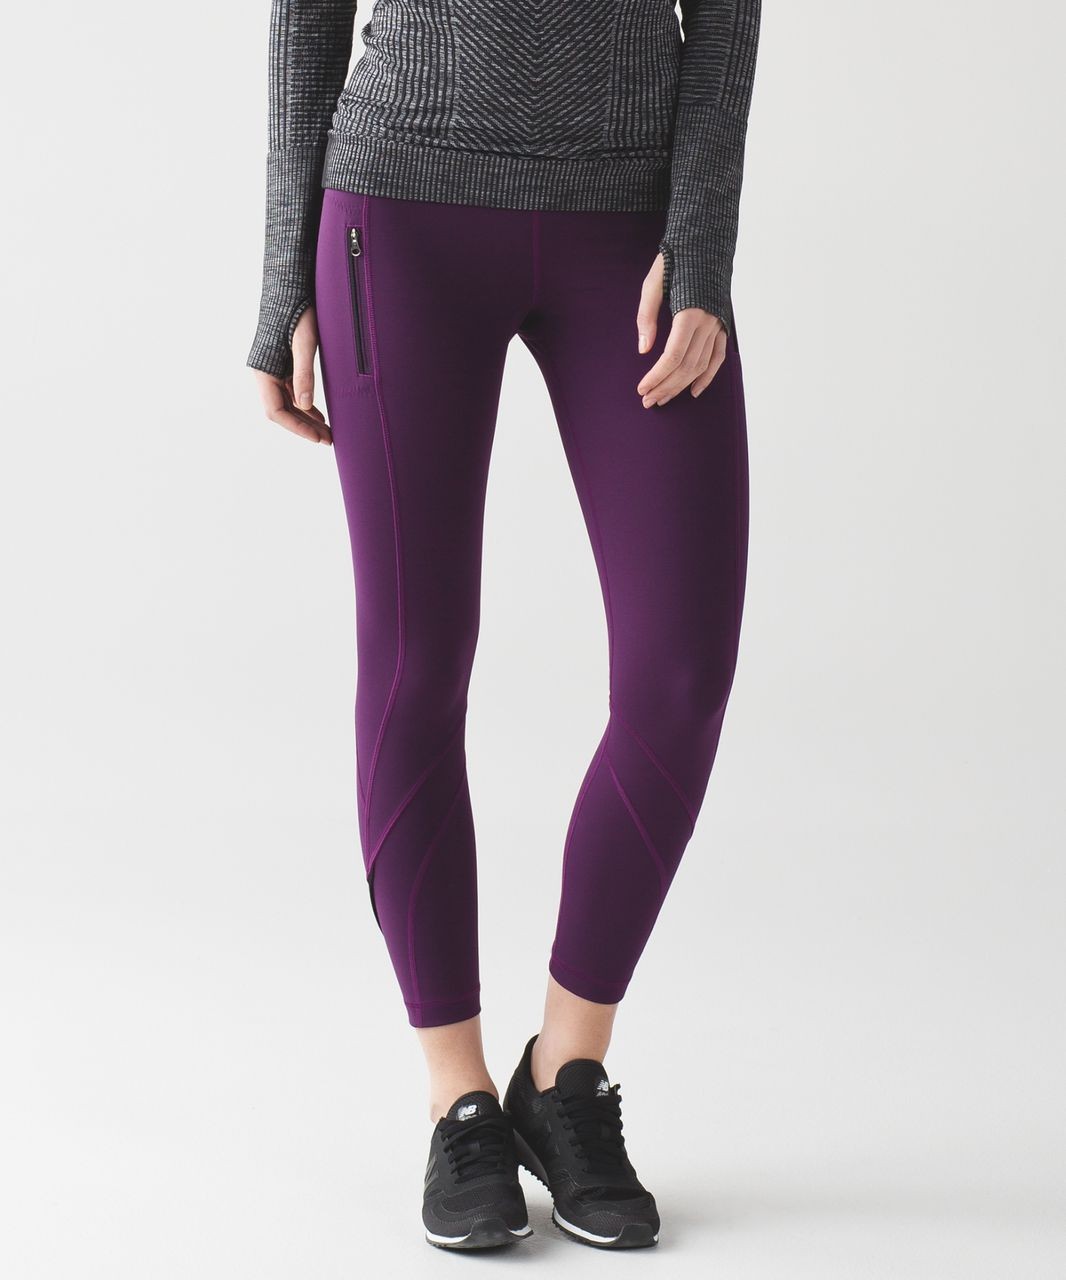 d4d0c1f09c Lululemon Inspire Tight II (Brushed) - Darkest Magenta - lulu fanatics